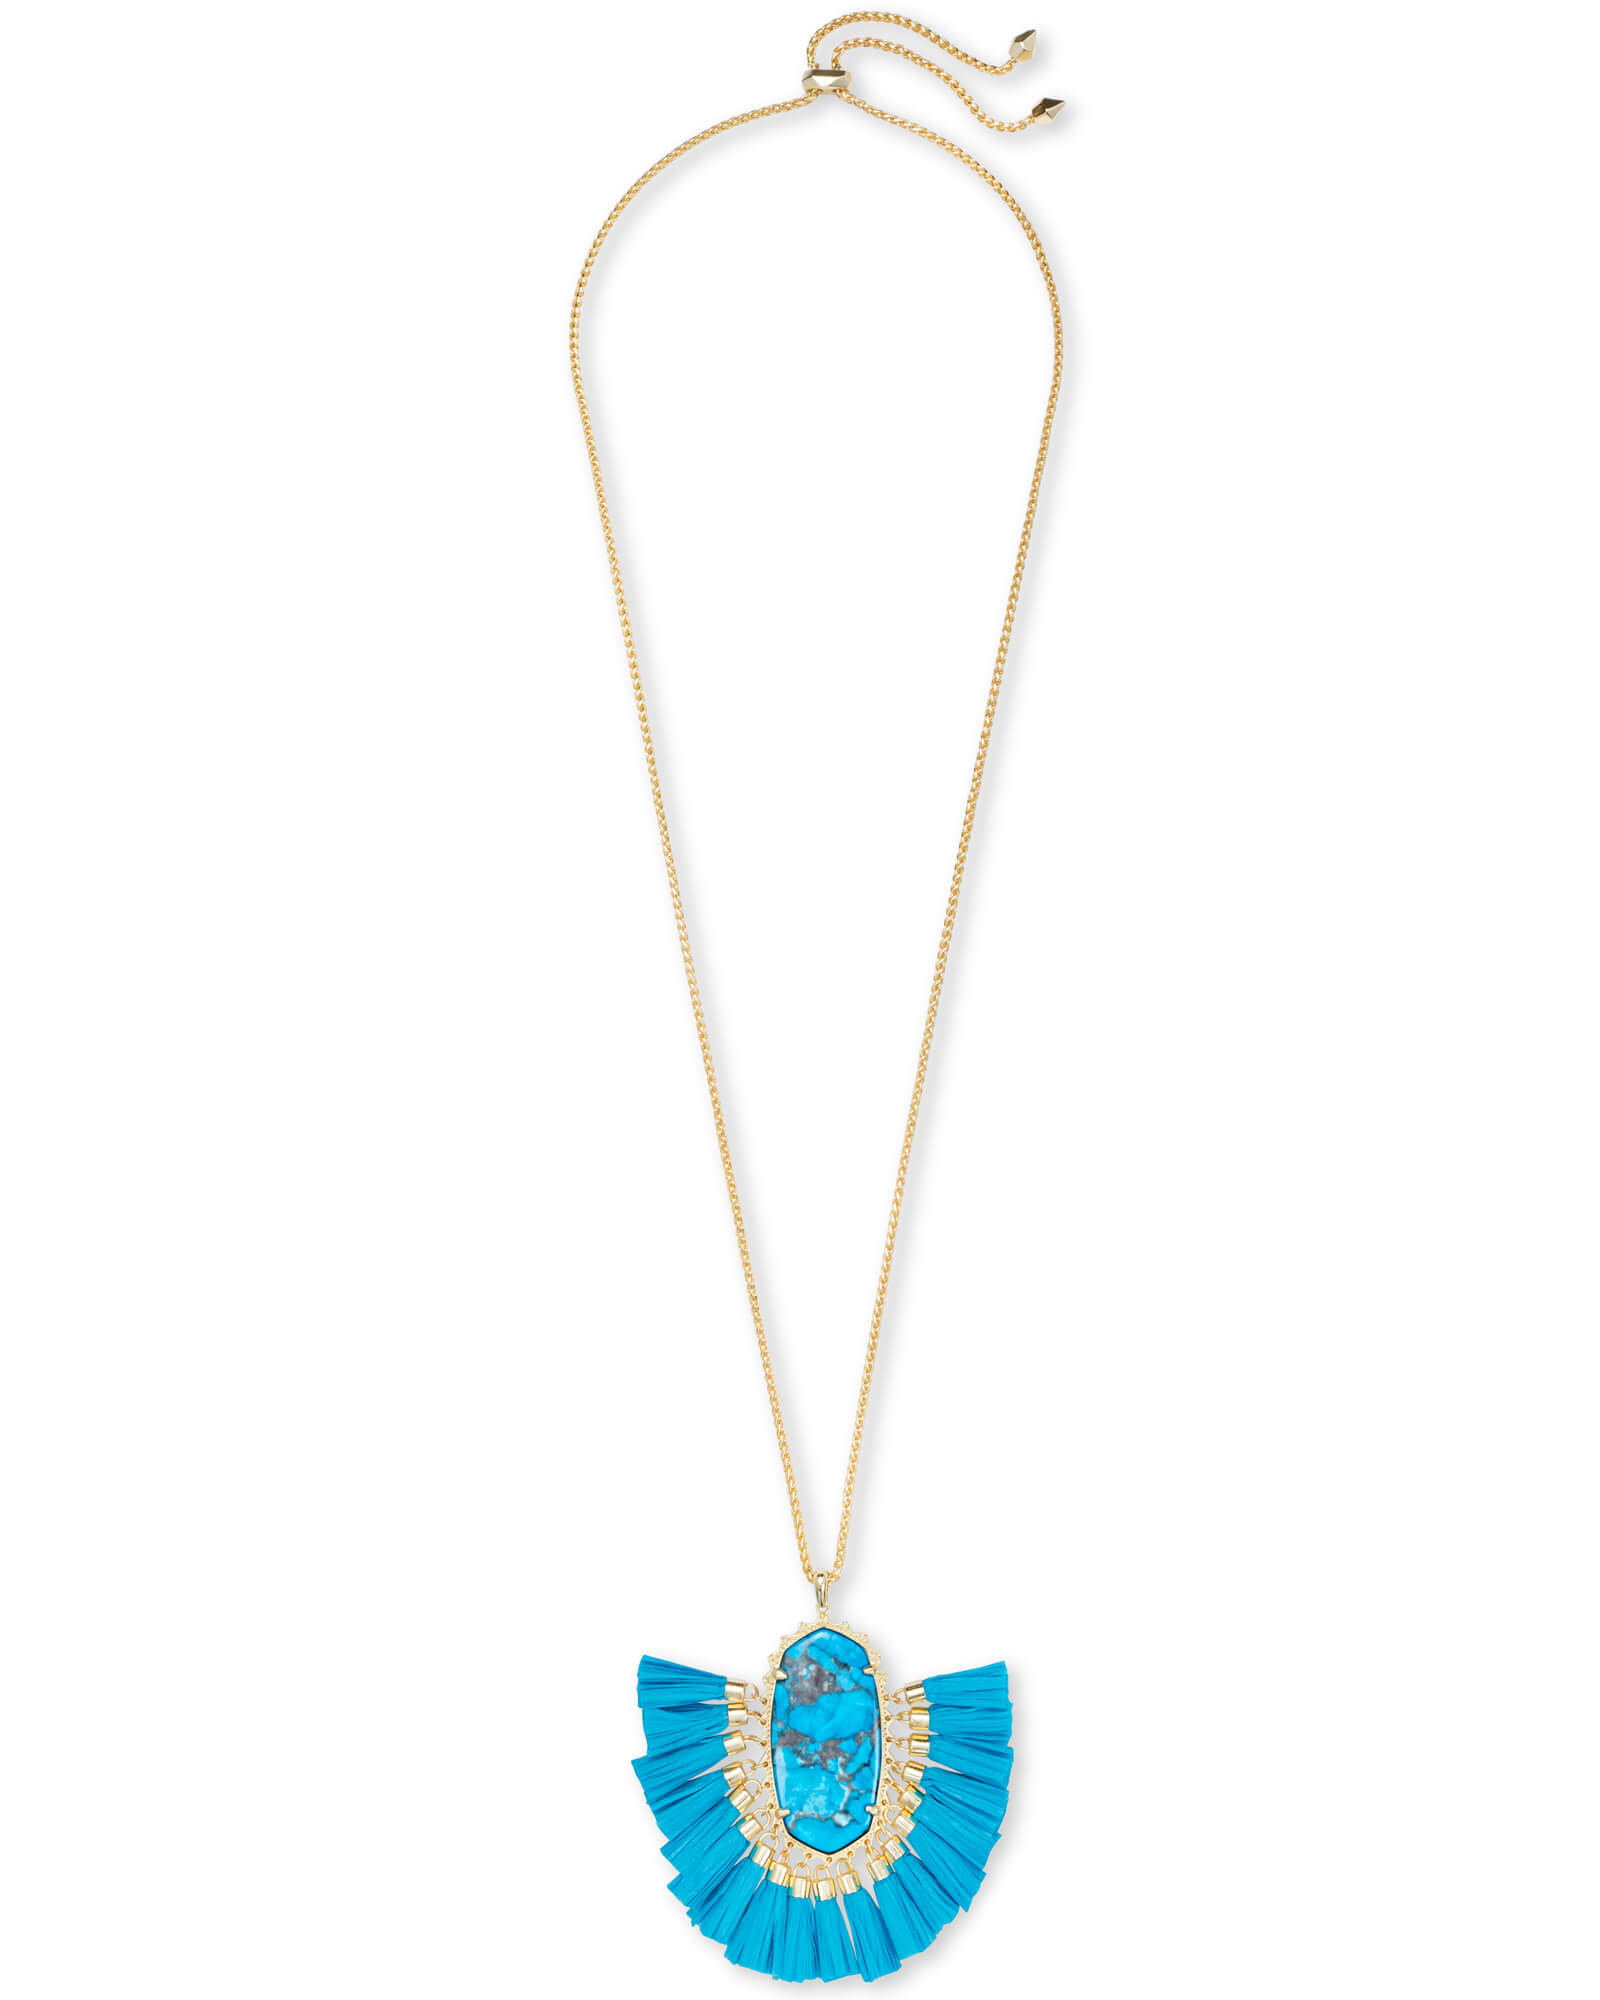 Betsy Long Pendant Necklace